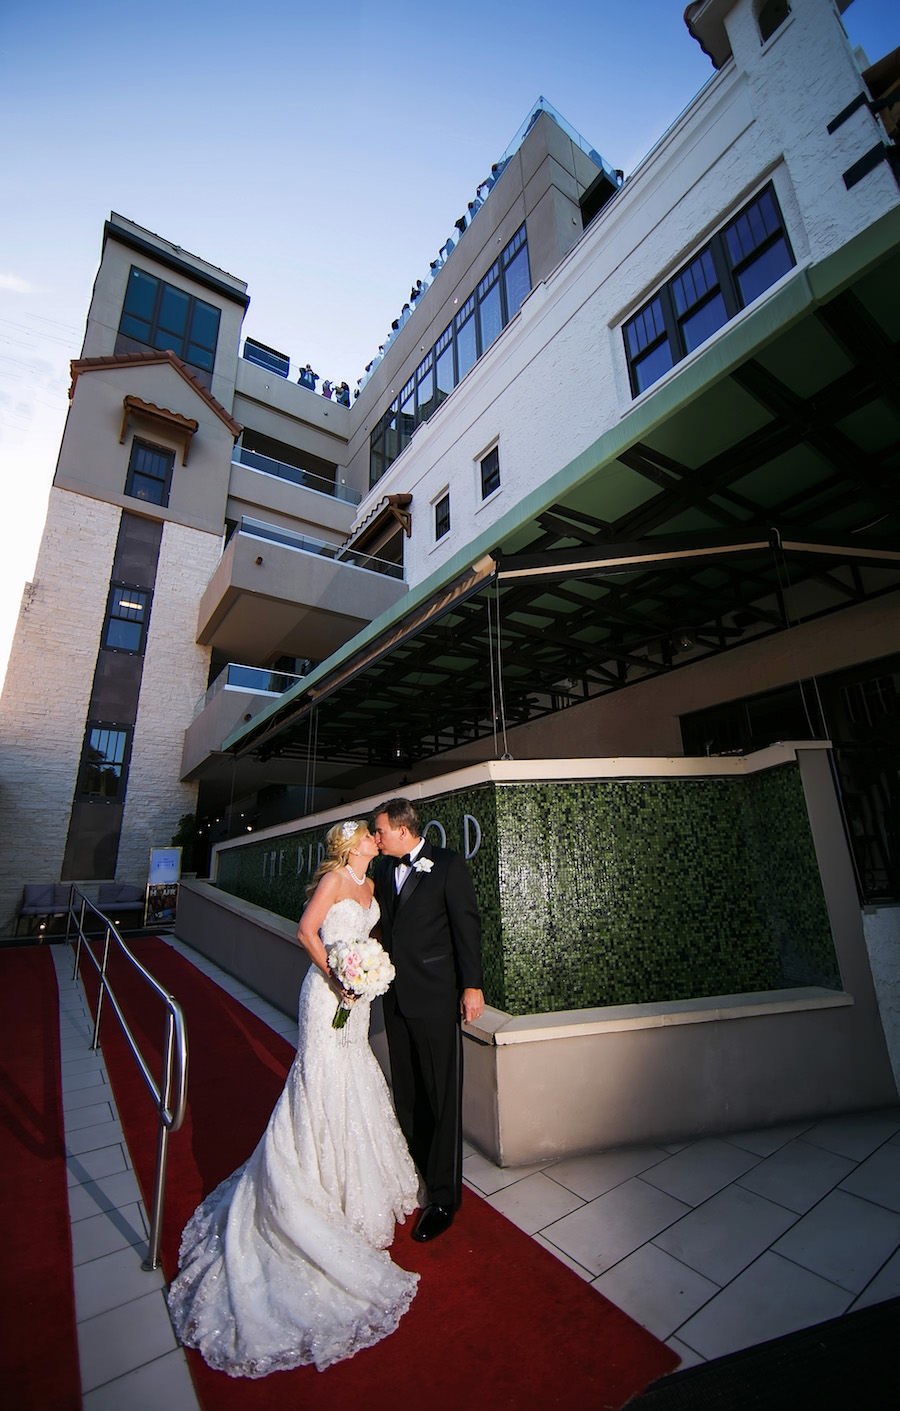 Downtown St. Petersburg Bride and Groom Wedding Portrait in Black Tuxedo and Ivory and Silver Allure Couture Wedding Dress with Ivory Floral Wedding Bouquet at St. Pete Wedding Venue The Birchwood   Photography by Limelight Photography